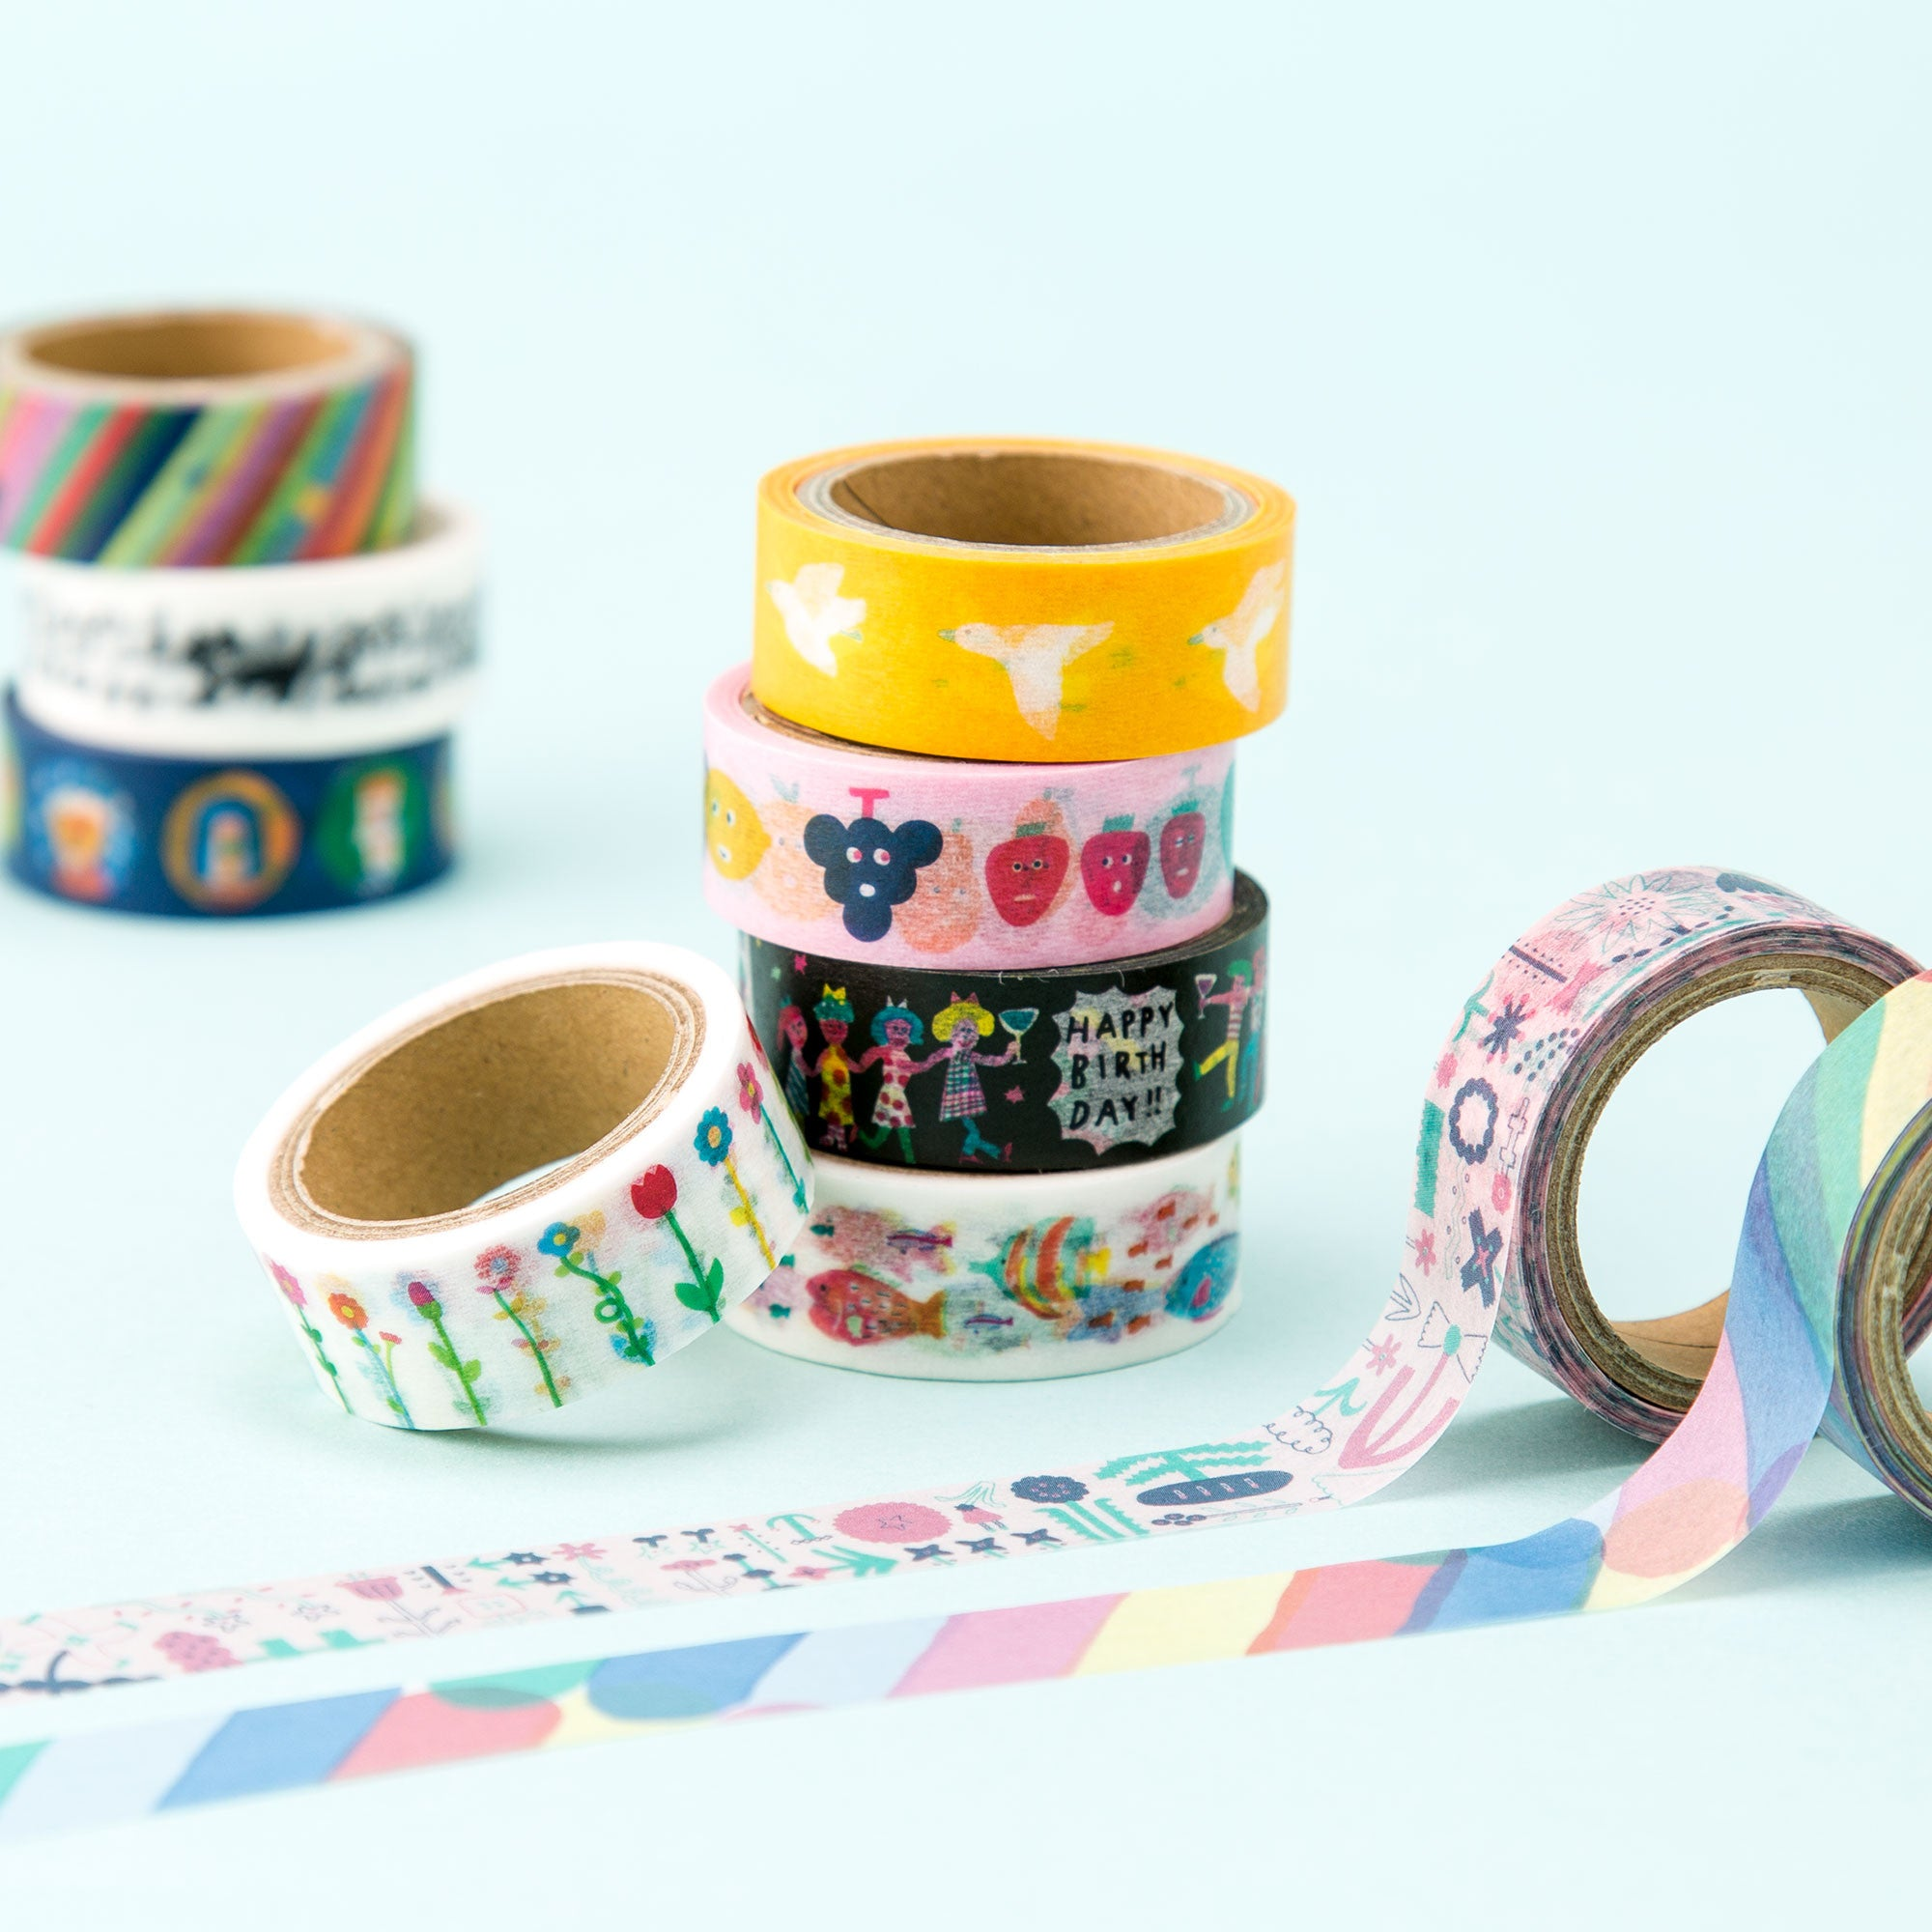 AIUEO Washi Tapes - neko border